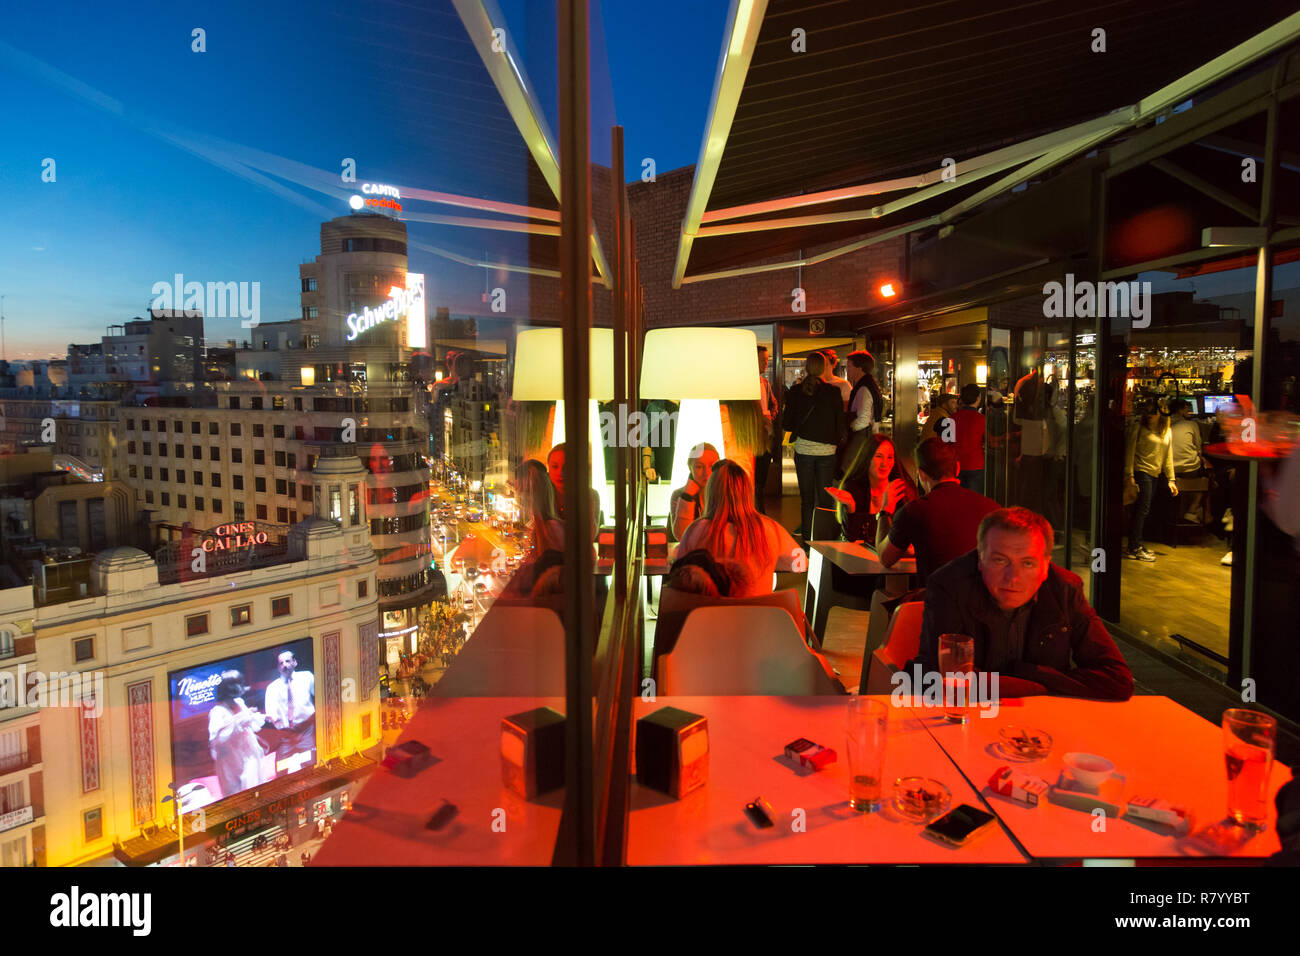 People enjoying evening drinks and amazing panoramic views of Madrid at dusk on rooftop bar of El Corte Ingles department store in Madrid, Spain. - Stock Image